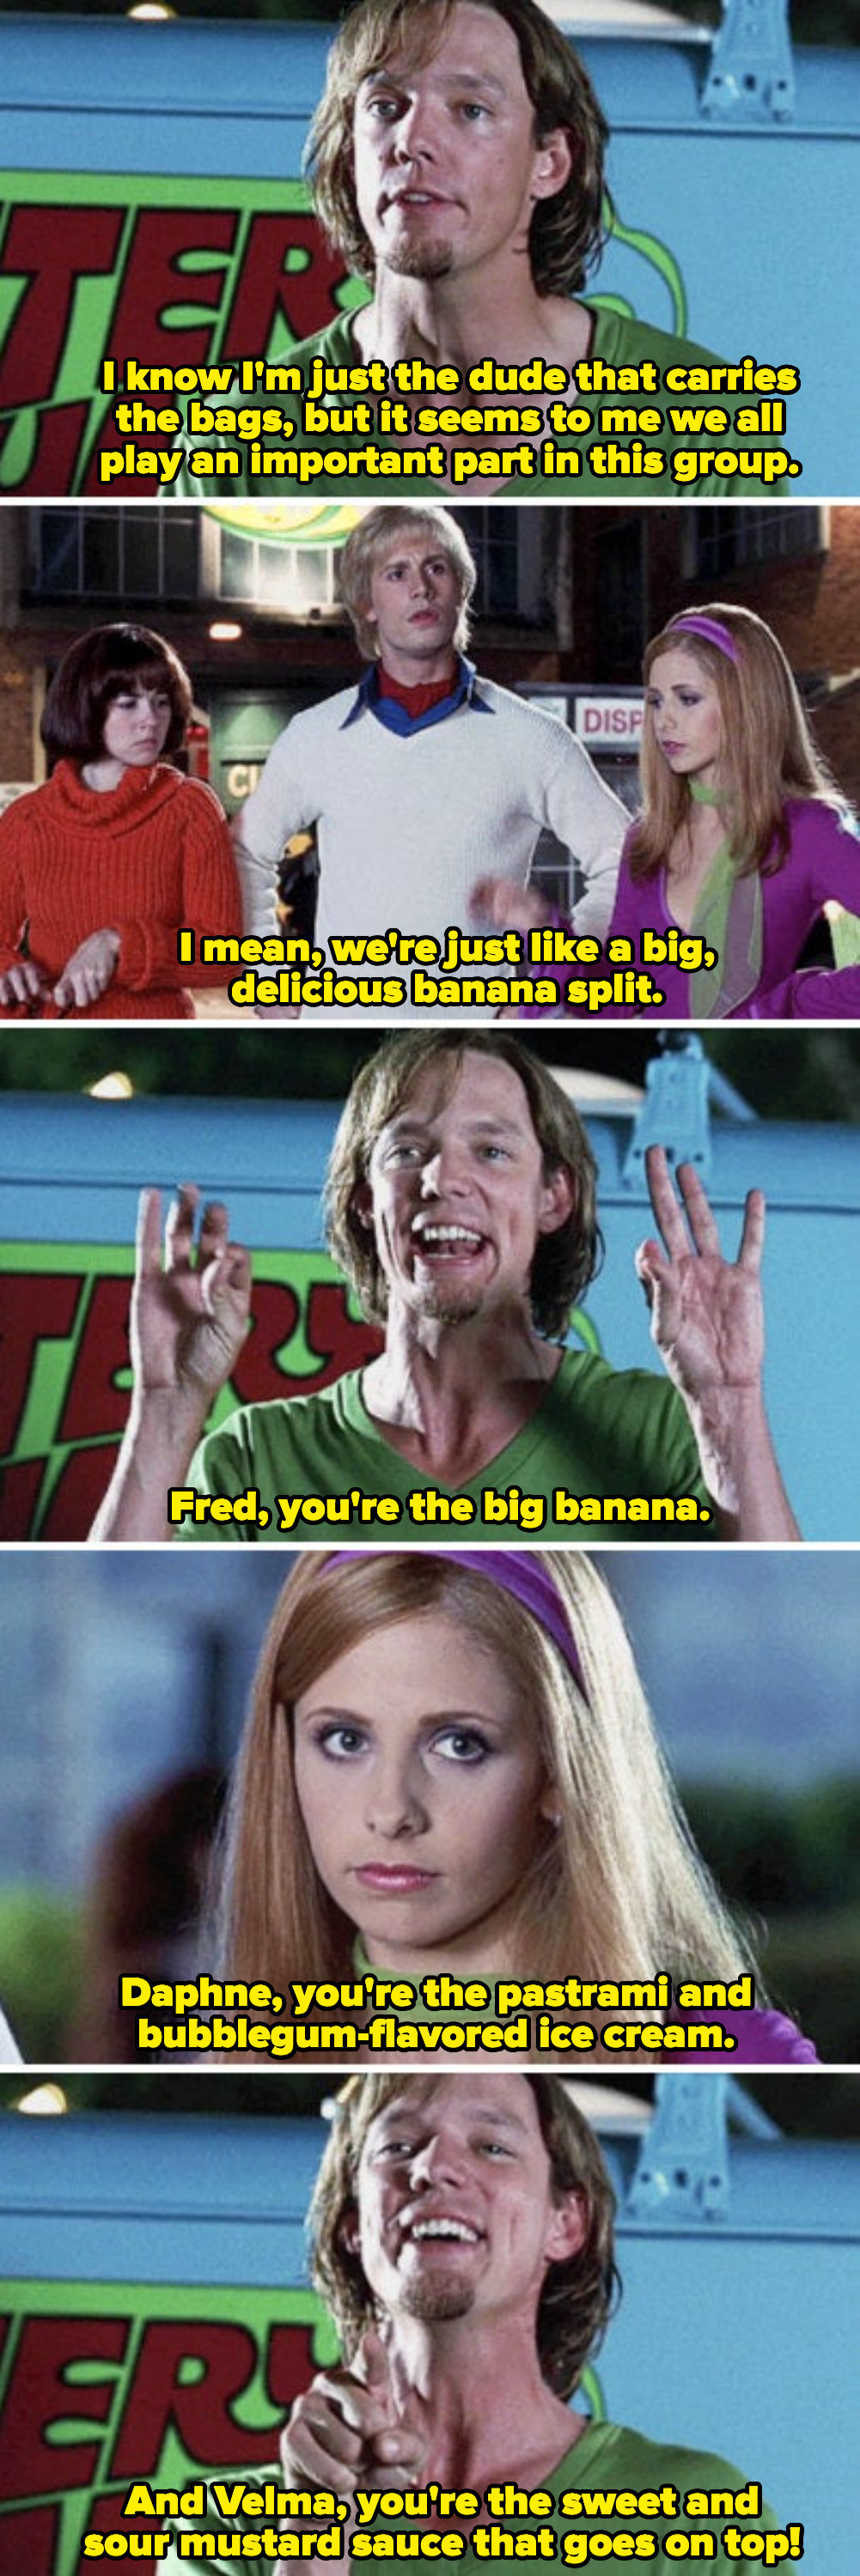 """Shaggy telling Daphne, Fred, and Velma that the group is like a banana split: """"Daphne, you're the pastrami and bubblegum flavored ice cream"""""""